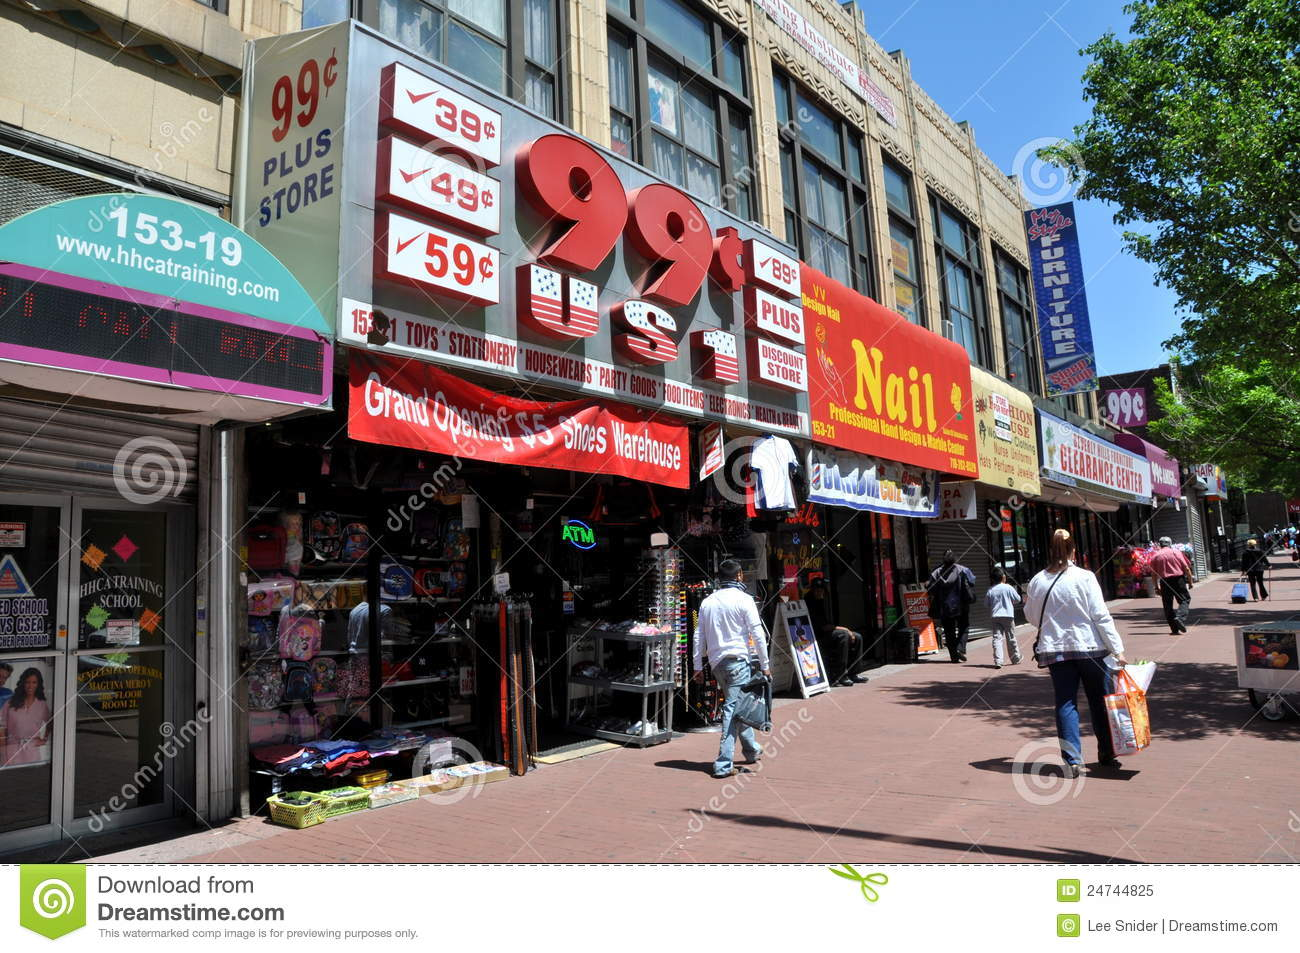 99 Cent Store And Other Bargain Businesses Line Busy Jamaica Avenue The Main Thoroughfare In Neighbourhood Of Queens New York City